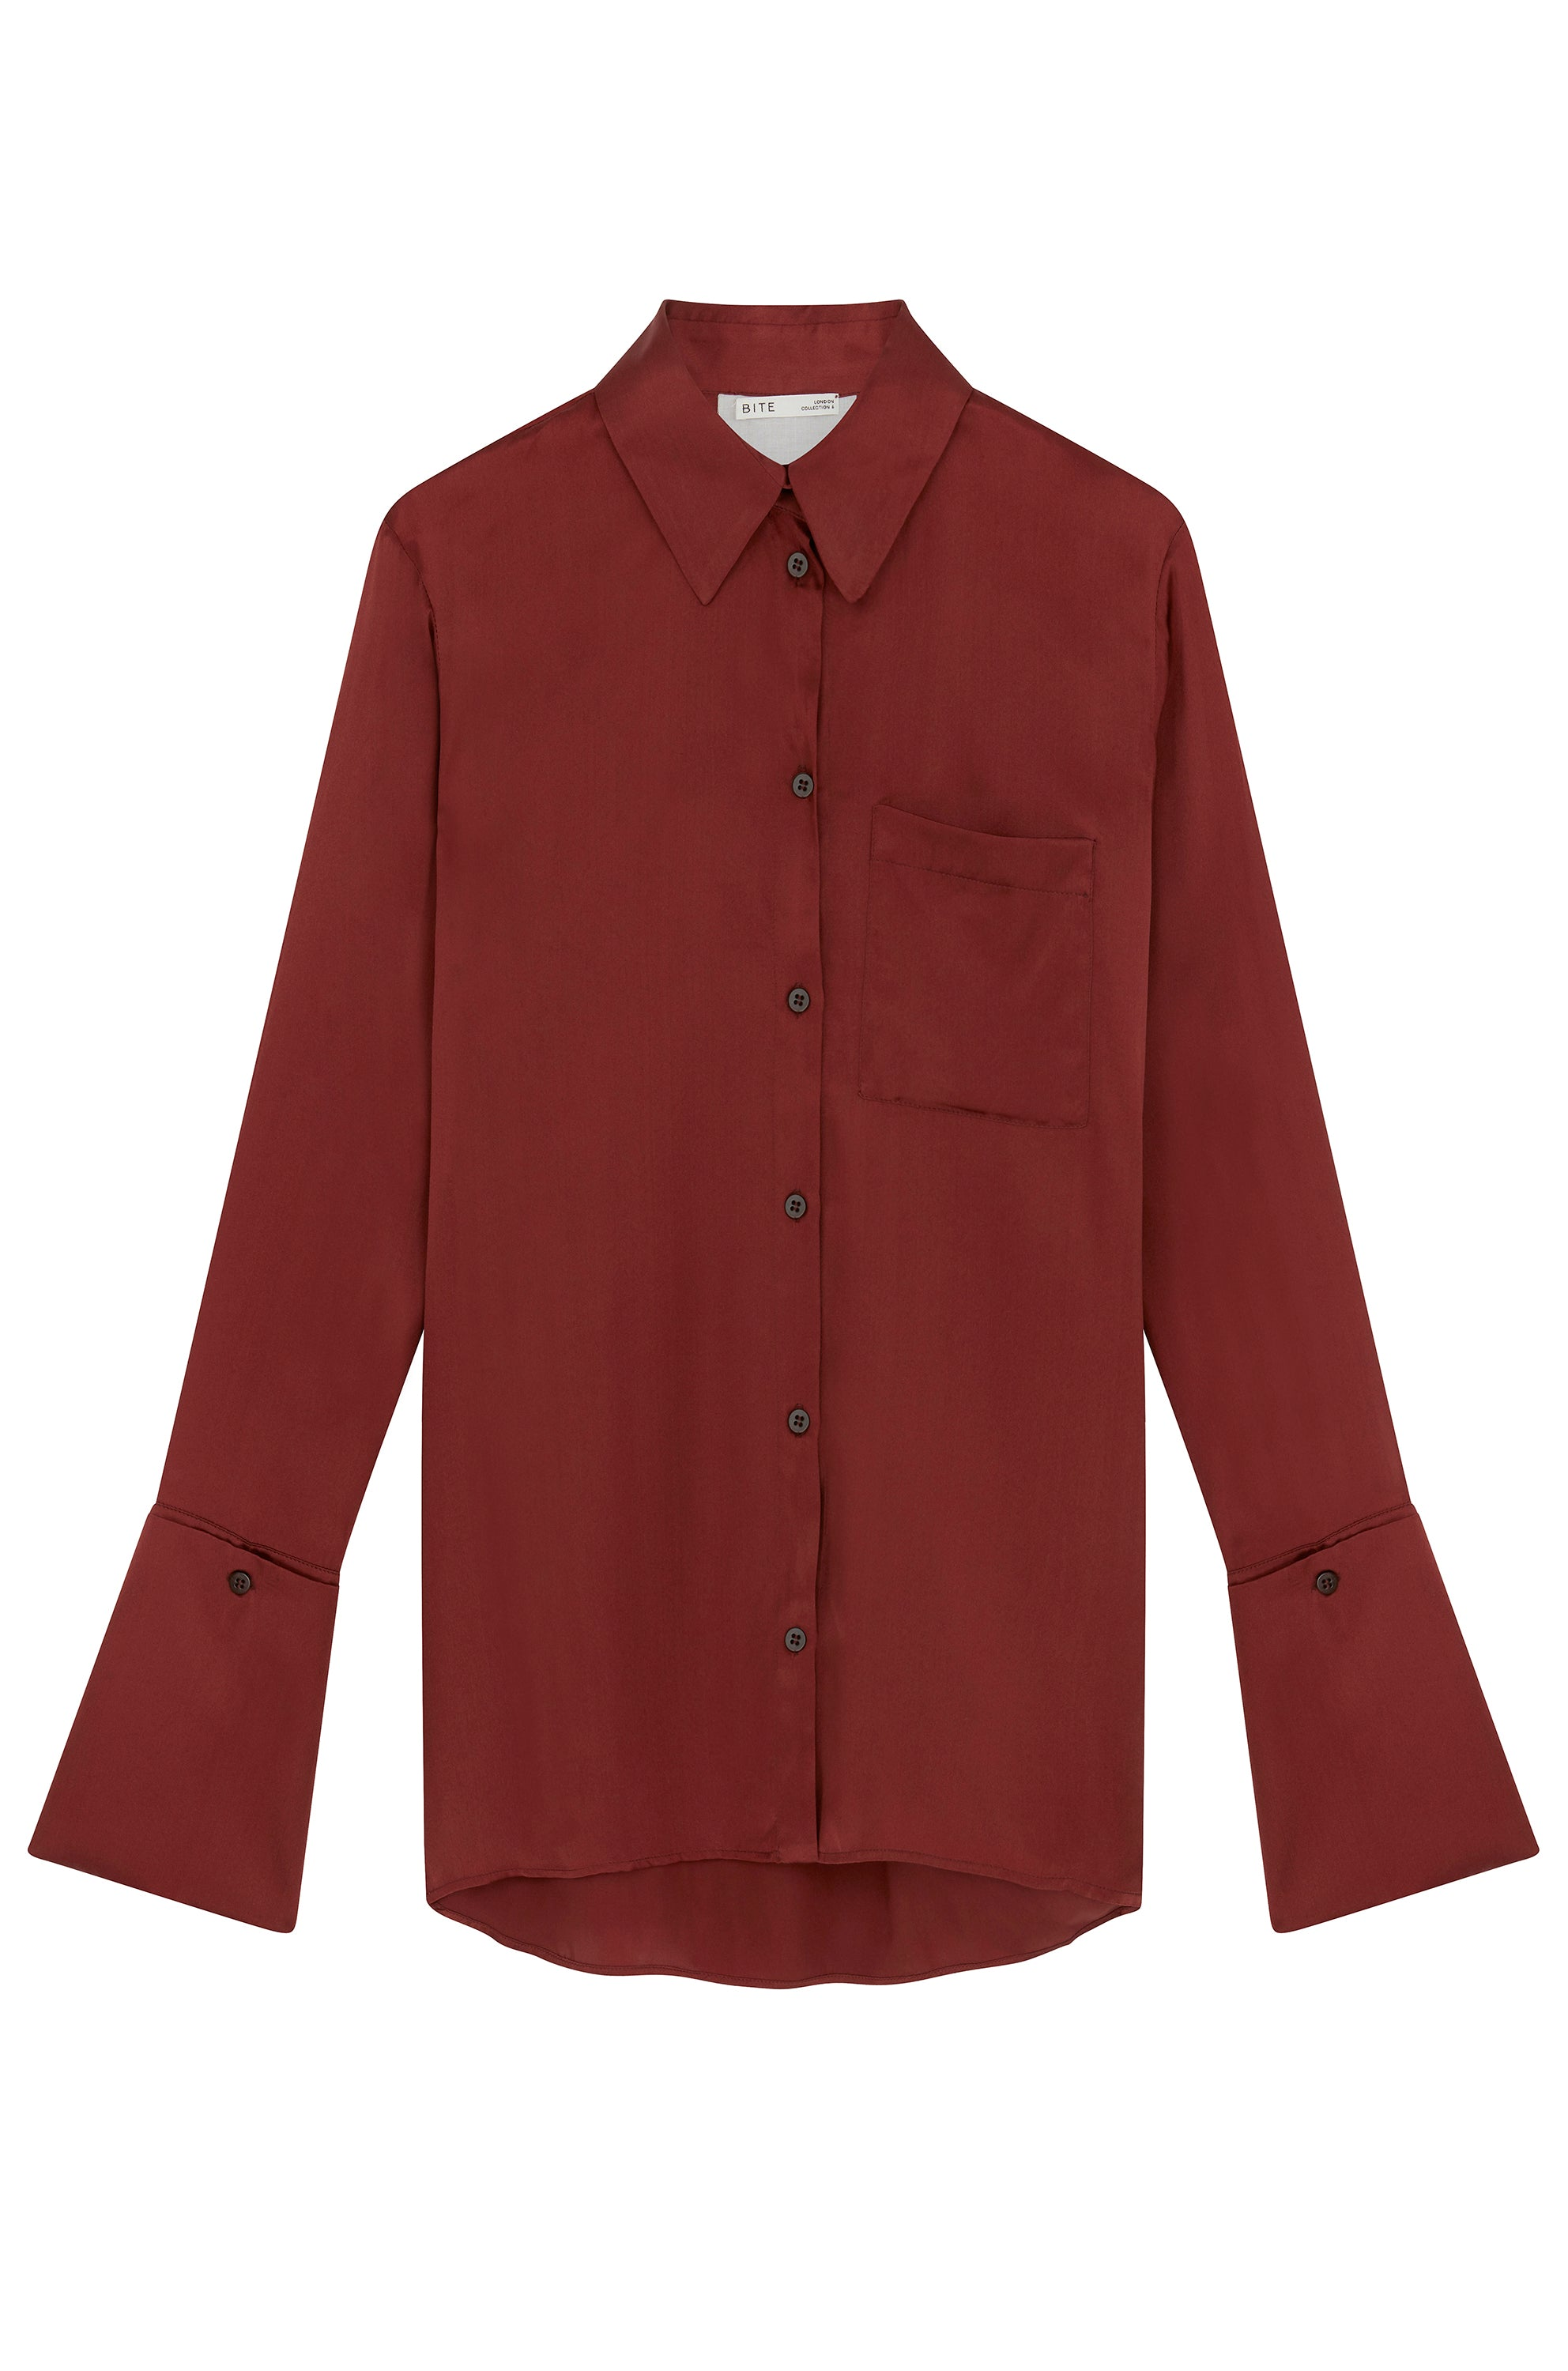 09-6 Signature Silk Shirt